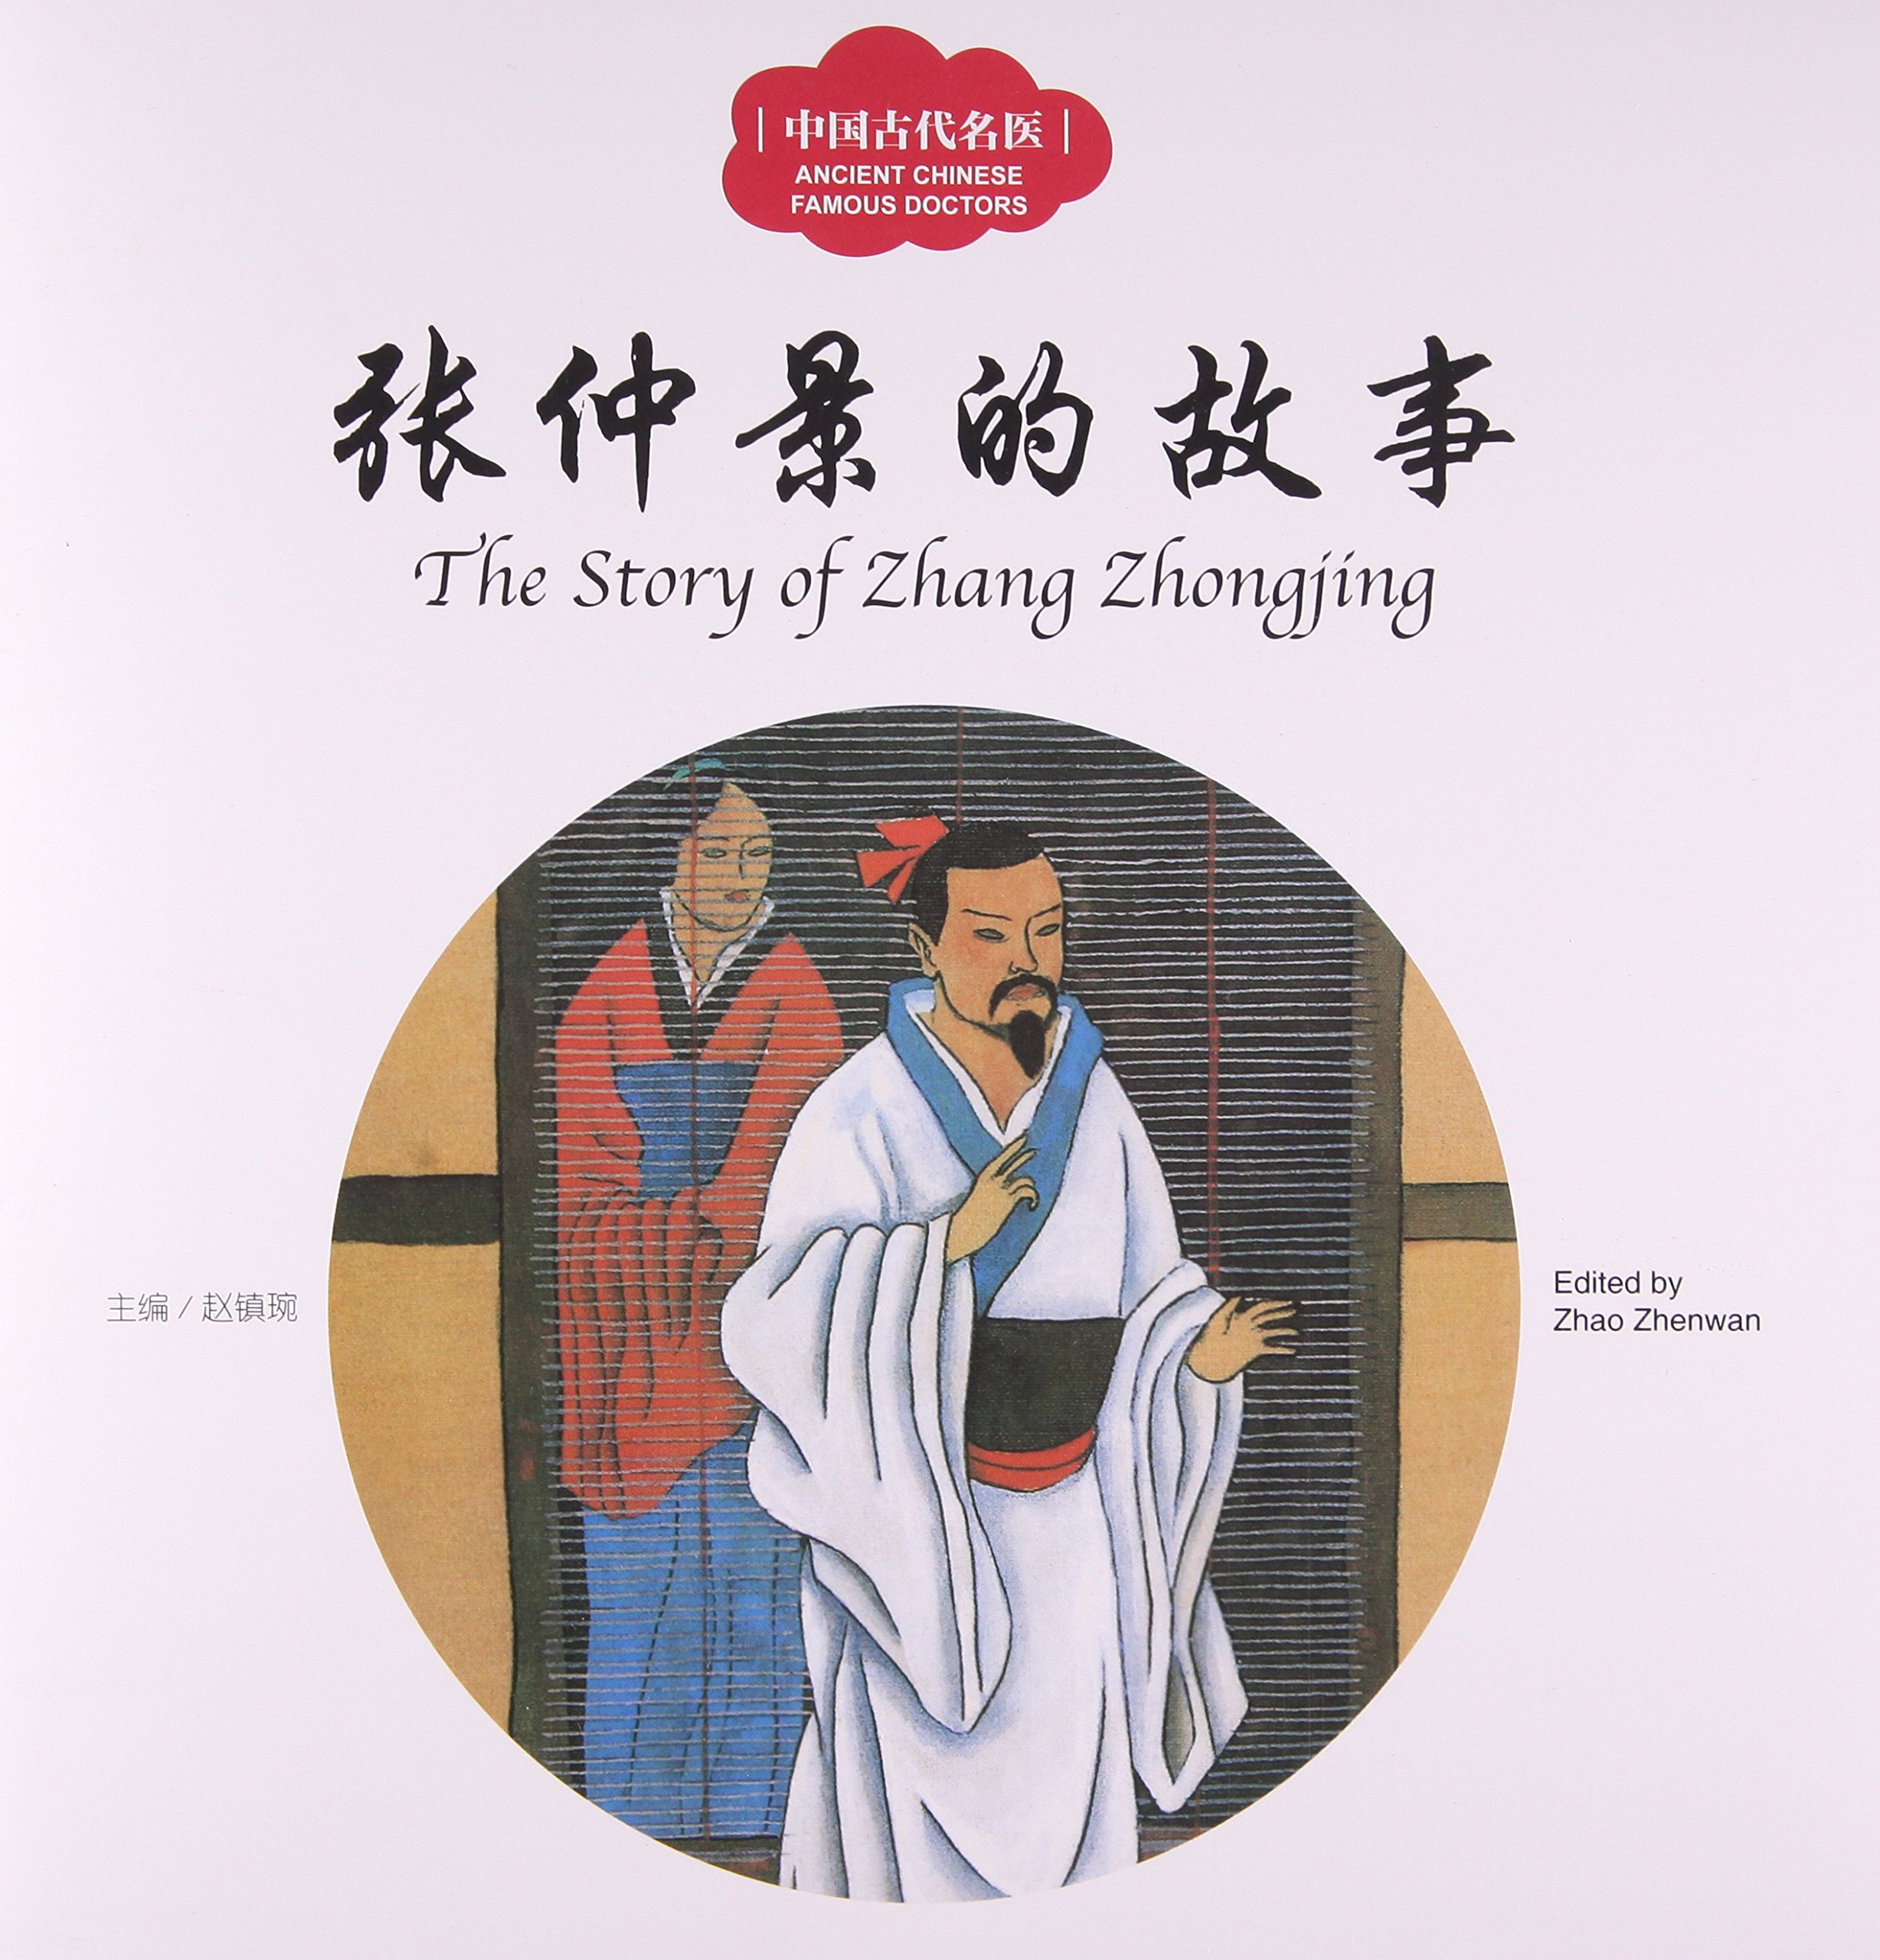 The Story of Zhang Zhongjing - First Books for Early Learning Series